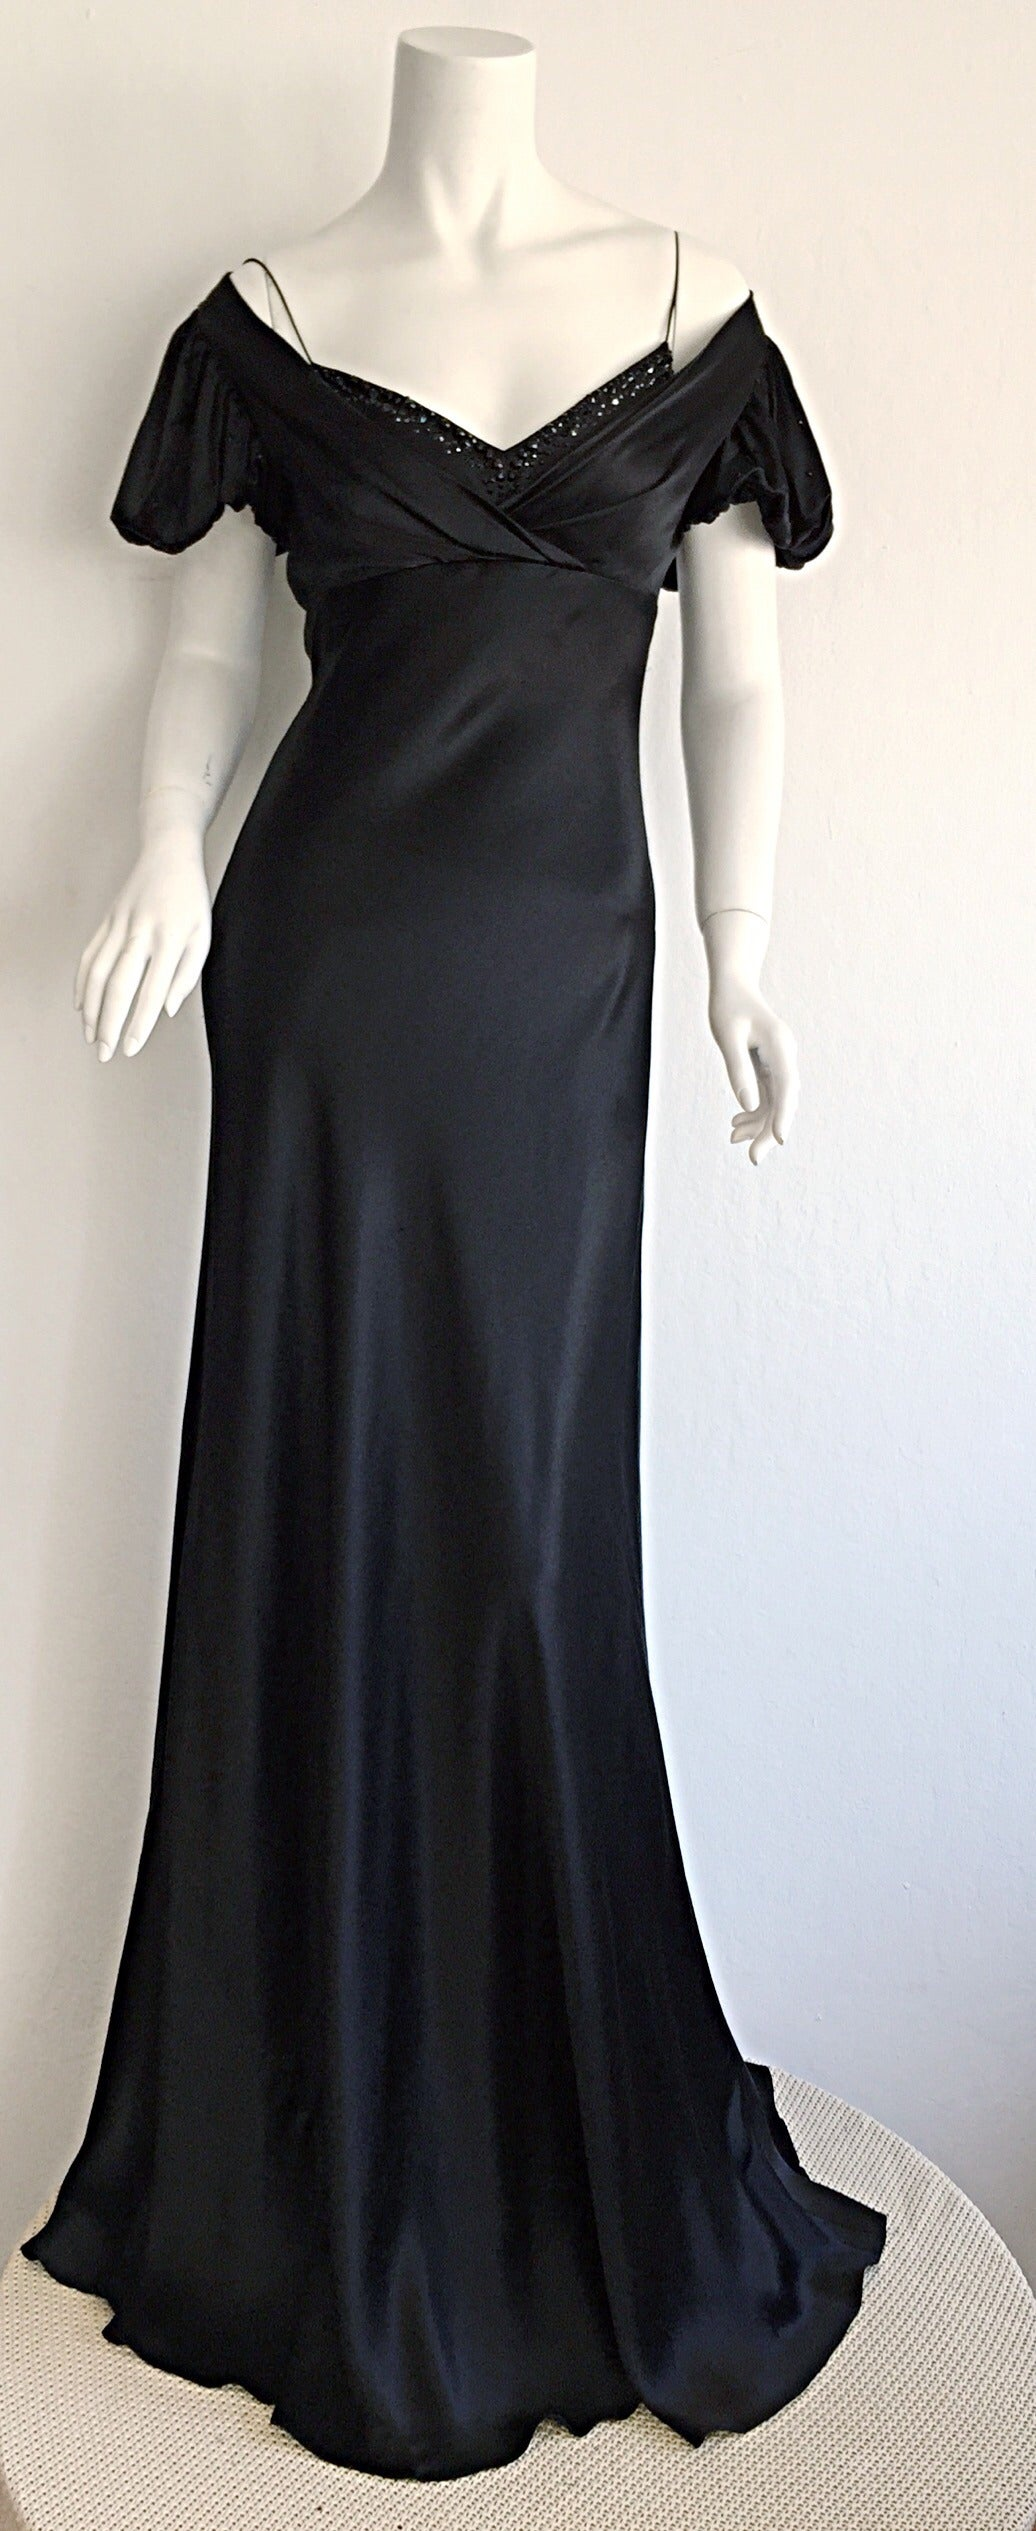 Incredibly gorgeous vintage 1990s Jenny Packham gown. Layers and layers of the highest quality black silk! Built in jeweled bodice that peeks through bust, with silk spaghetti straps. Can be worn on, or off shoulders. Truly stunning fit, that looks